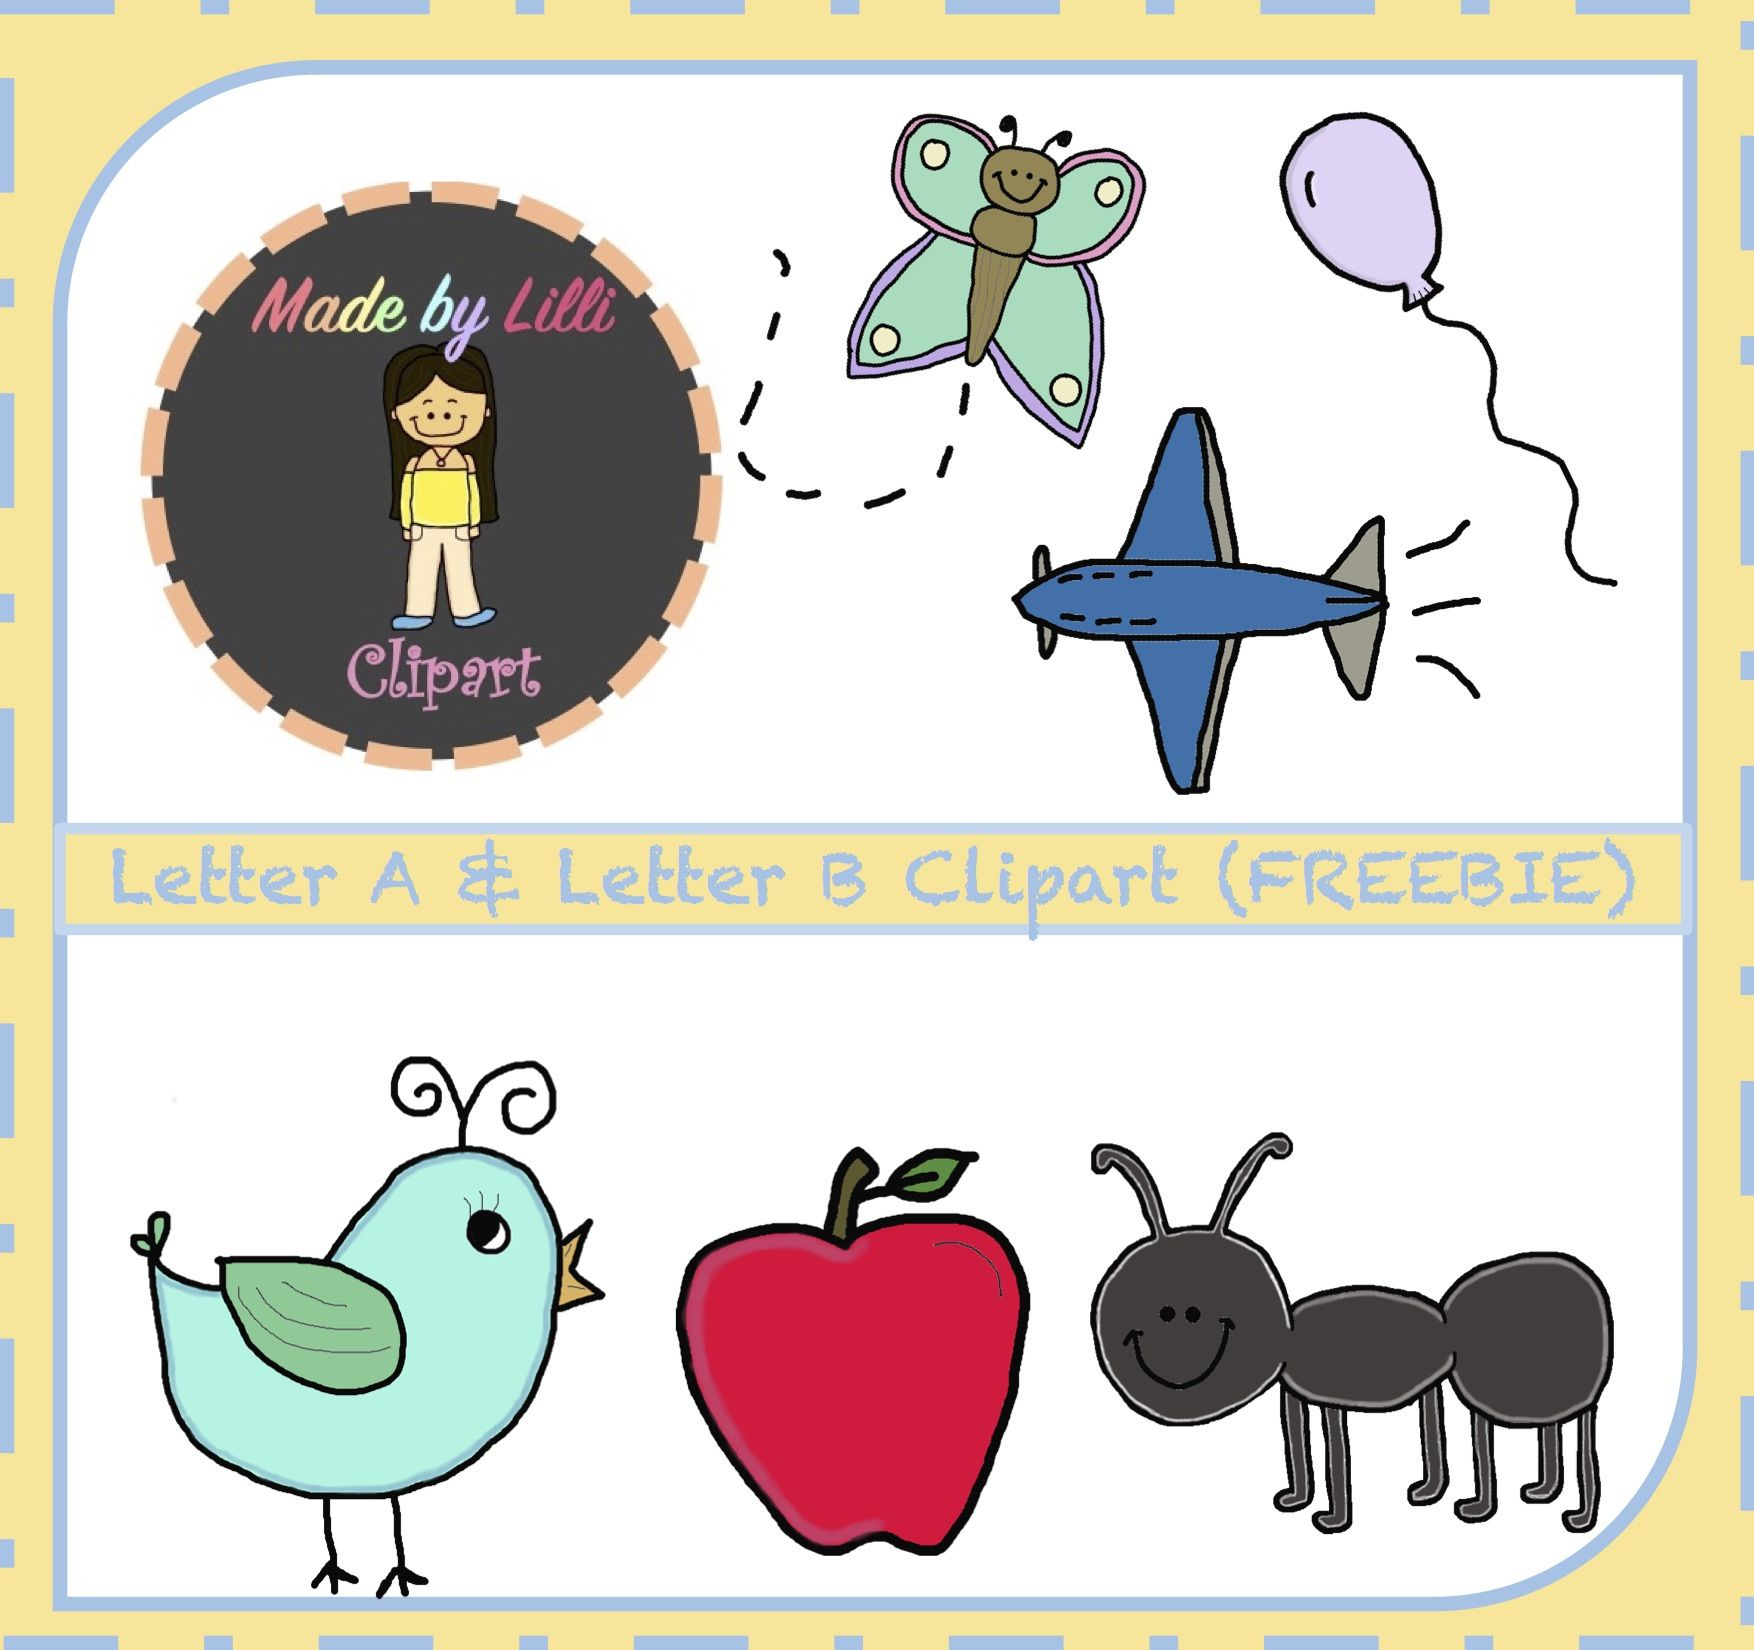 I am offering this Alphabet Letter A & Letter B clipart which has 3